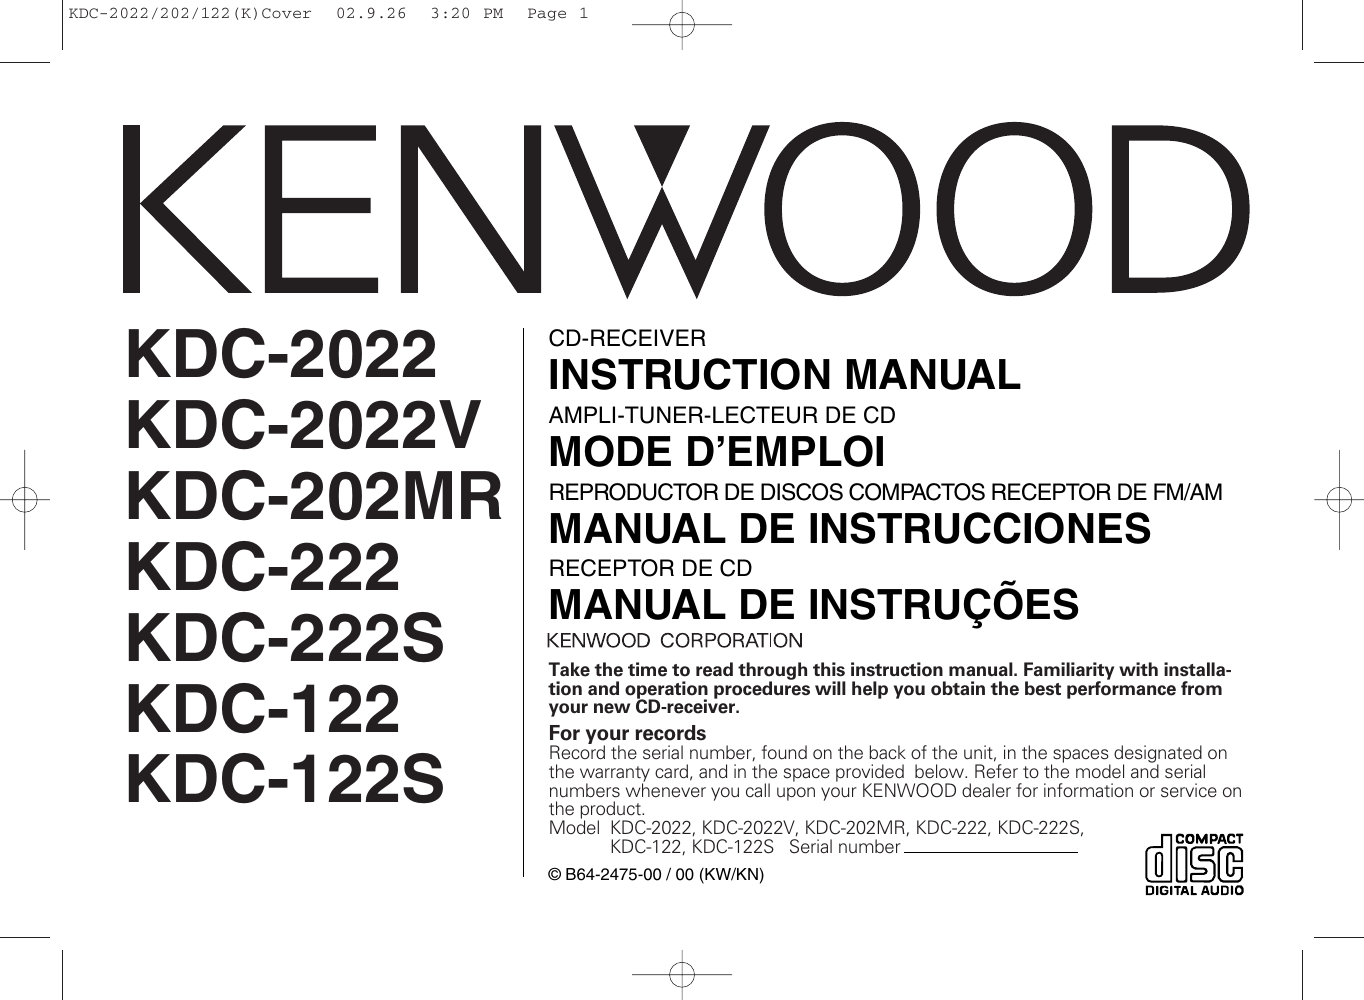 Kenwood Kdc Mp142 Wiring Diagram 222 Electrical Diagrams 202mr Owner S Manual 2022 2022v 222s 122 122s Wire